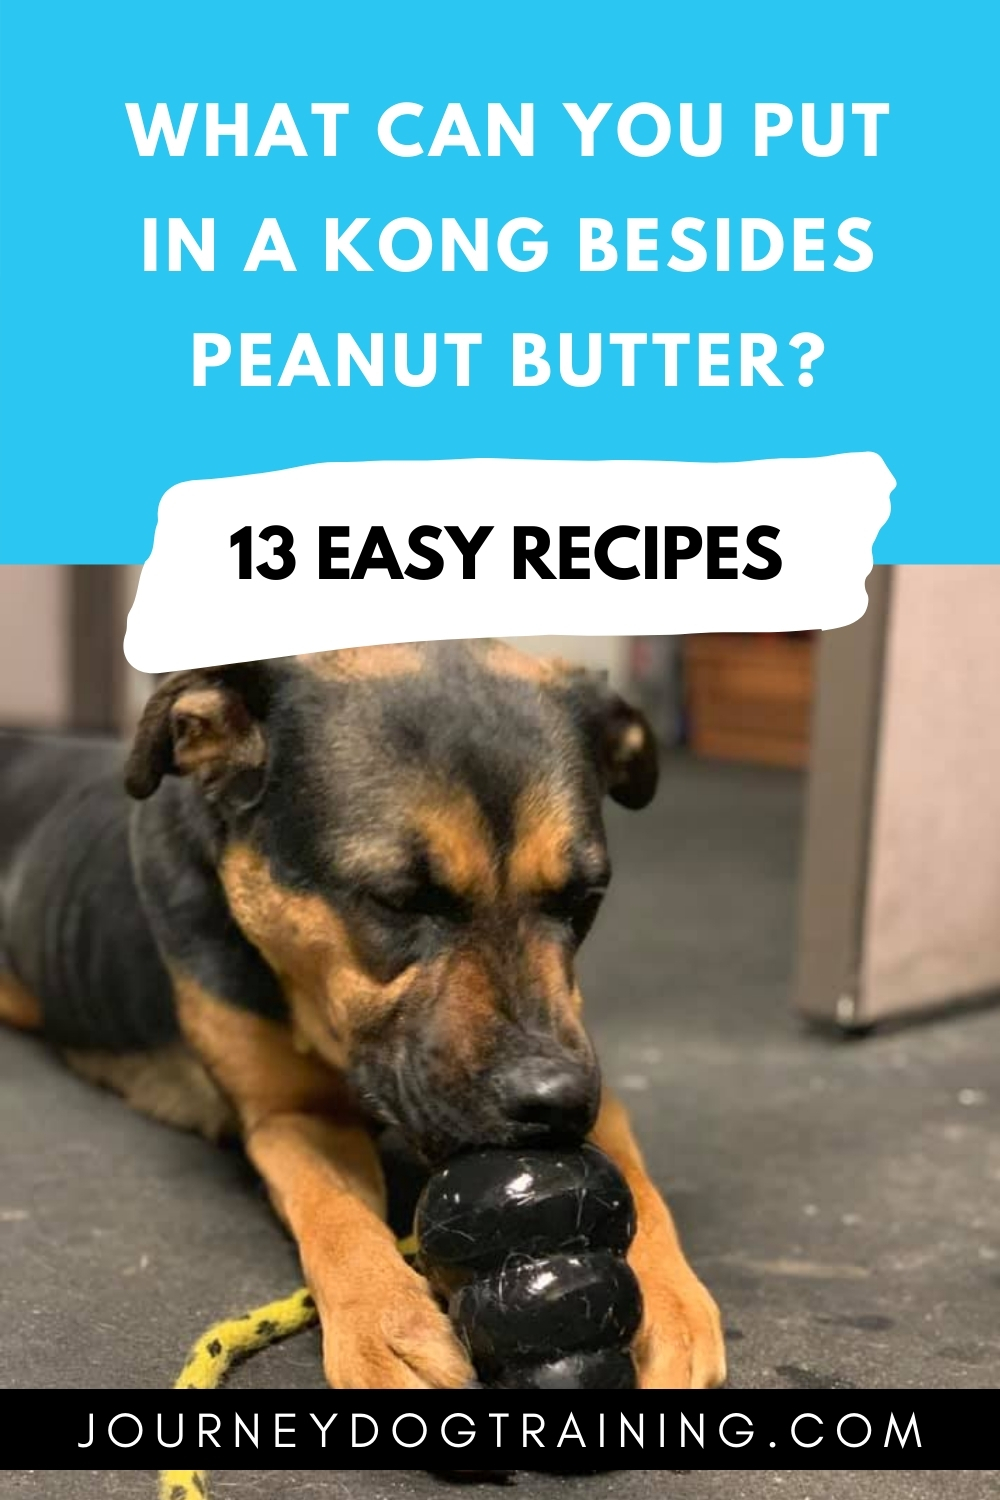 what can you put in a kong besides peanut butter? | journeydogtraining.com